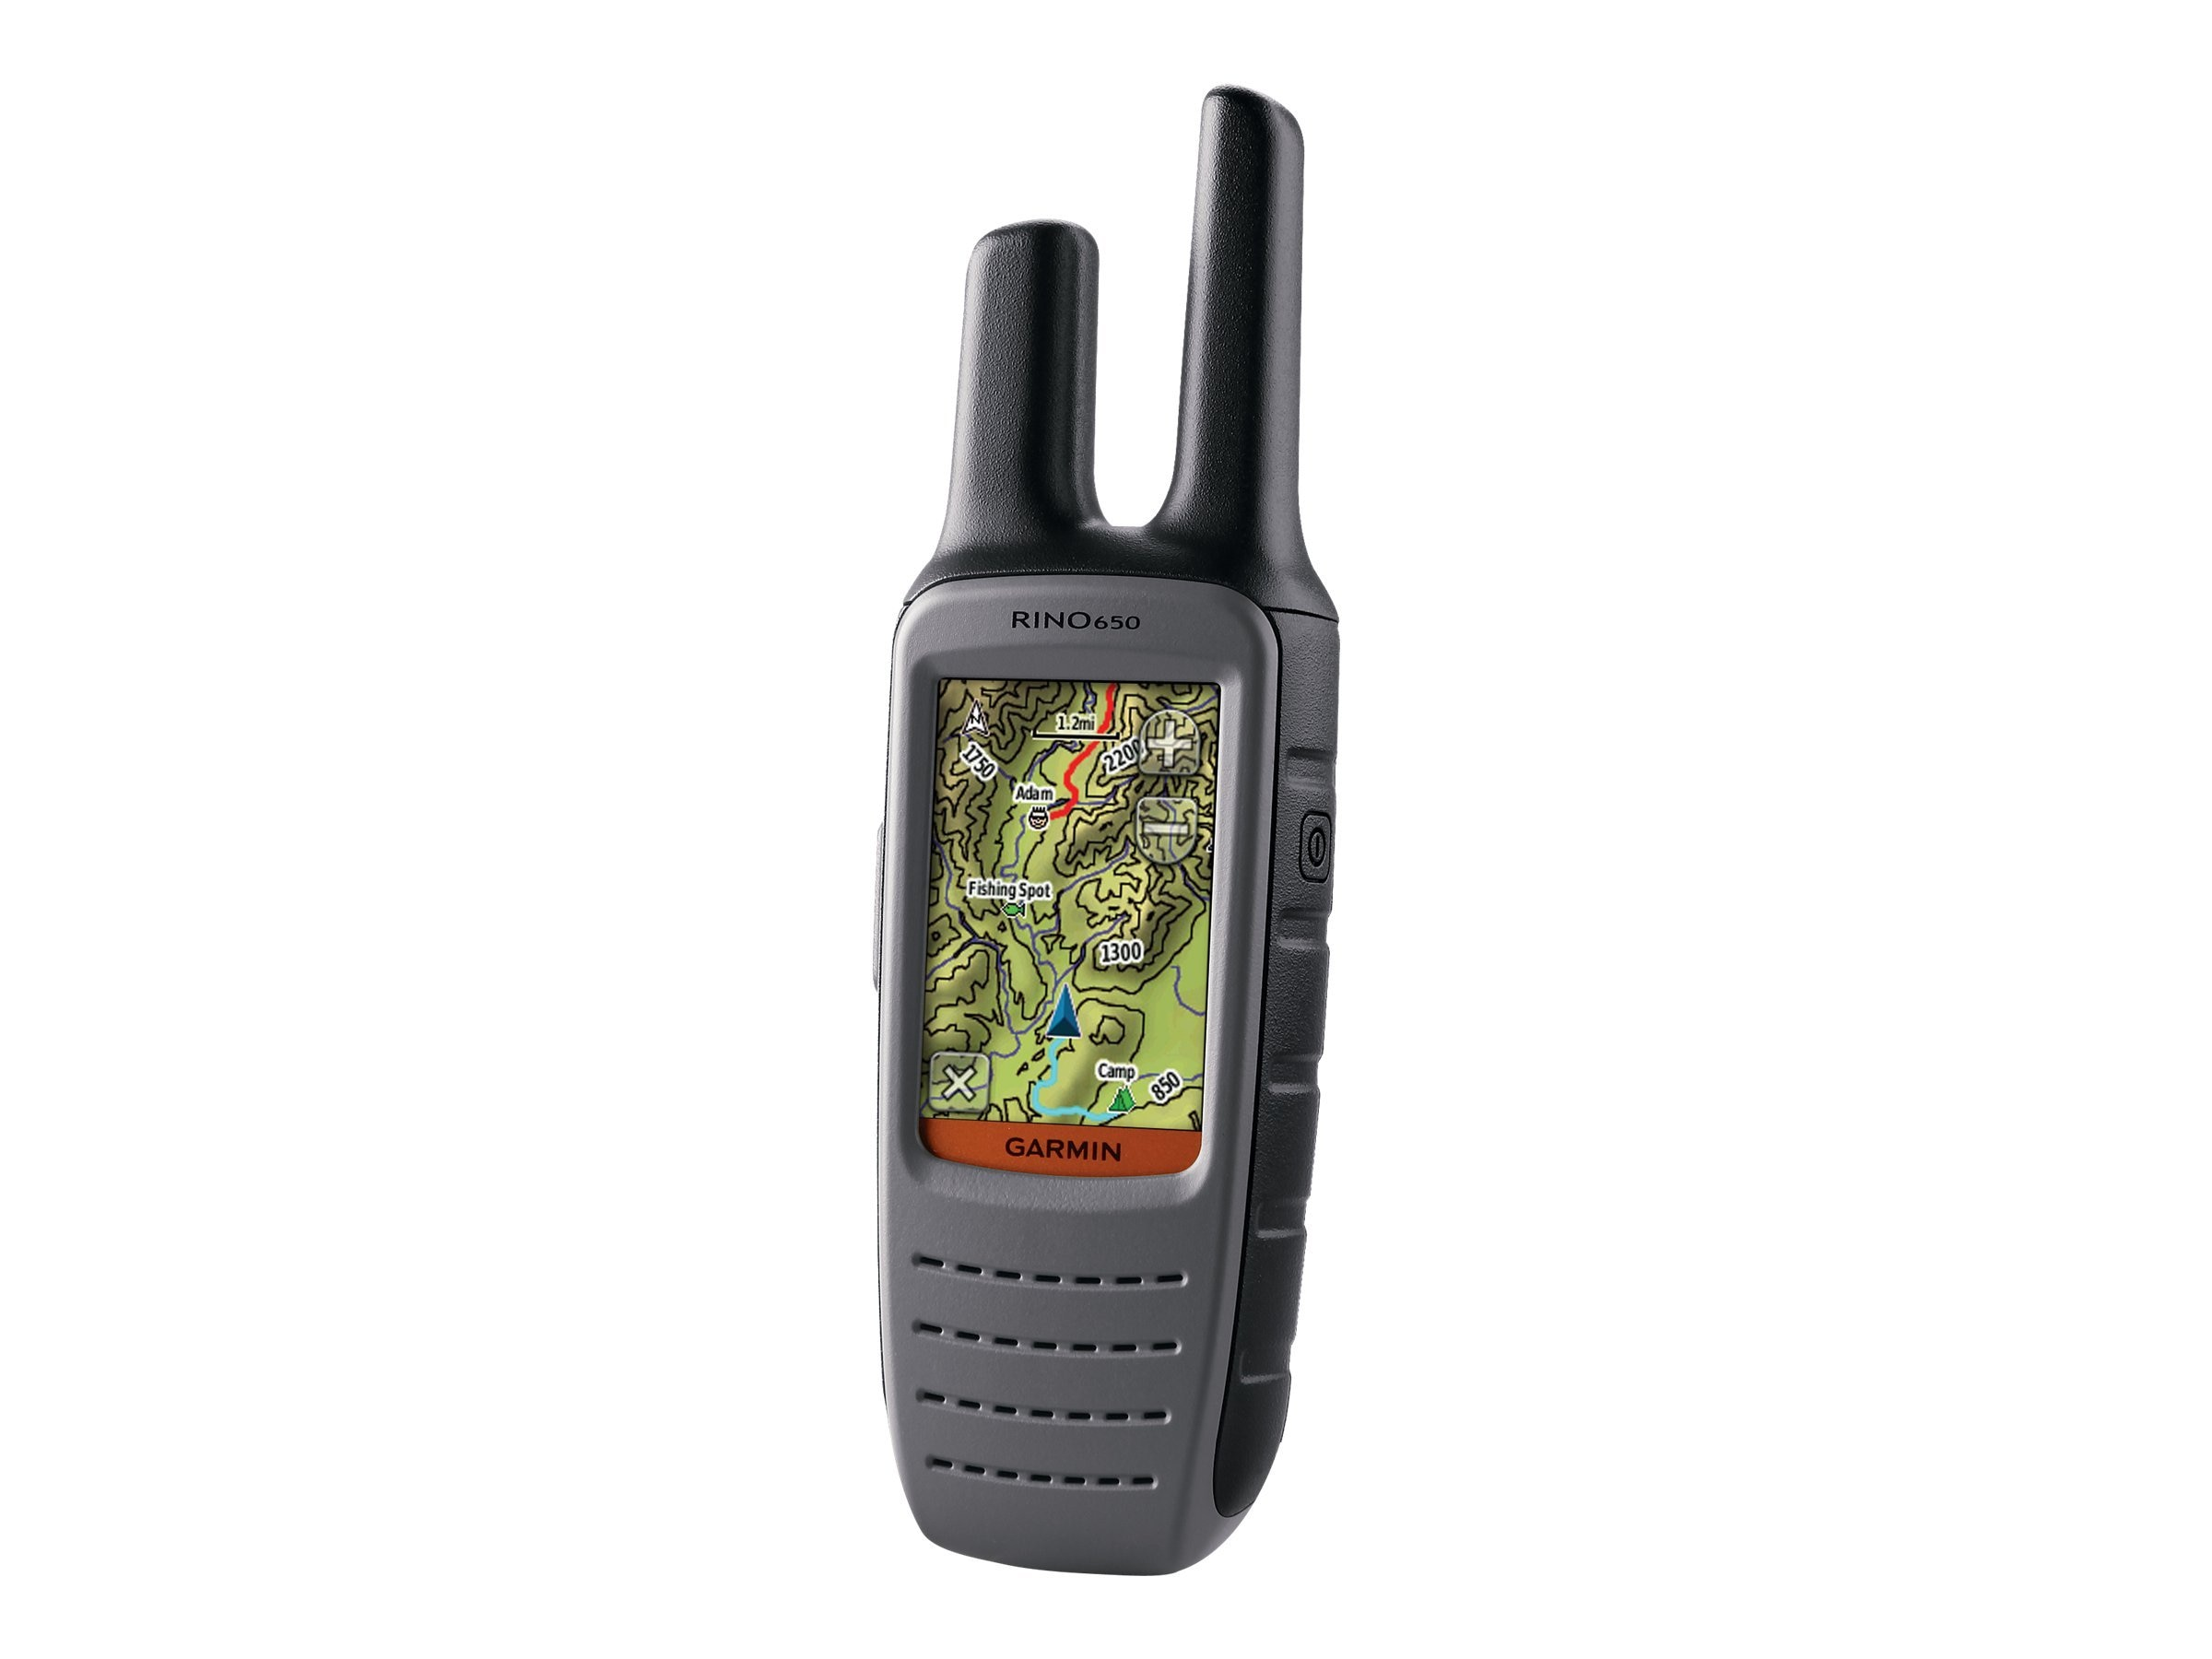 Garmin Rino 650 US GPS, 010-00928-01, 13283636, Global Positioning Systems